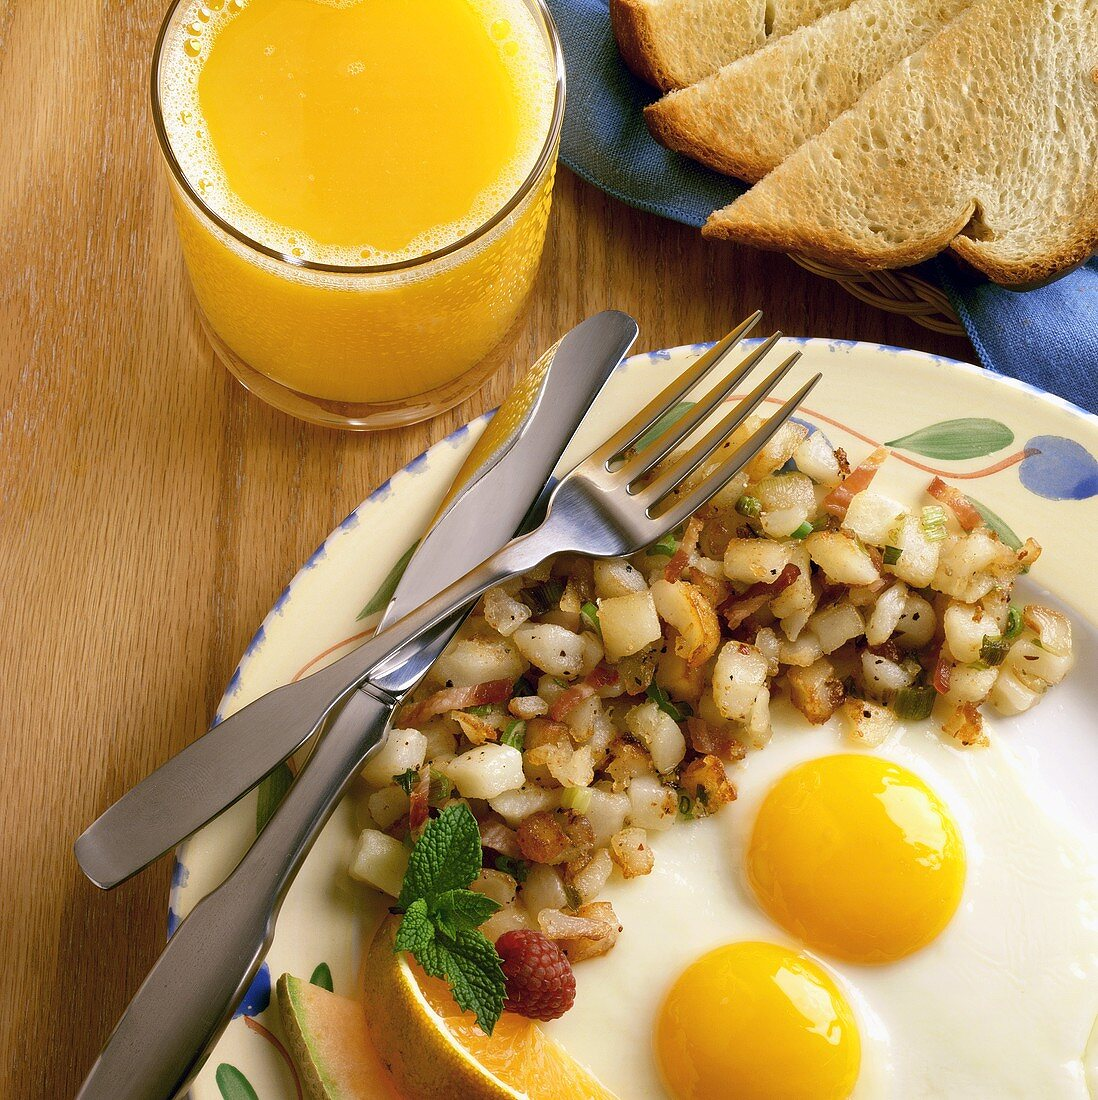 Two Fried Eggs with Hash Browns and a Glass of Orange Juice